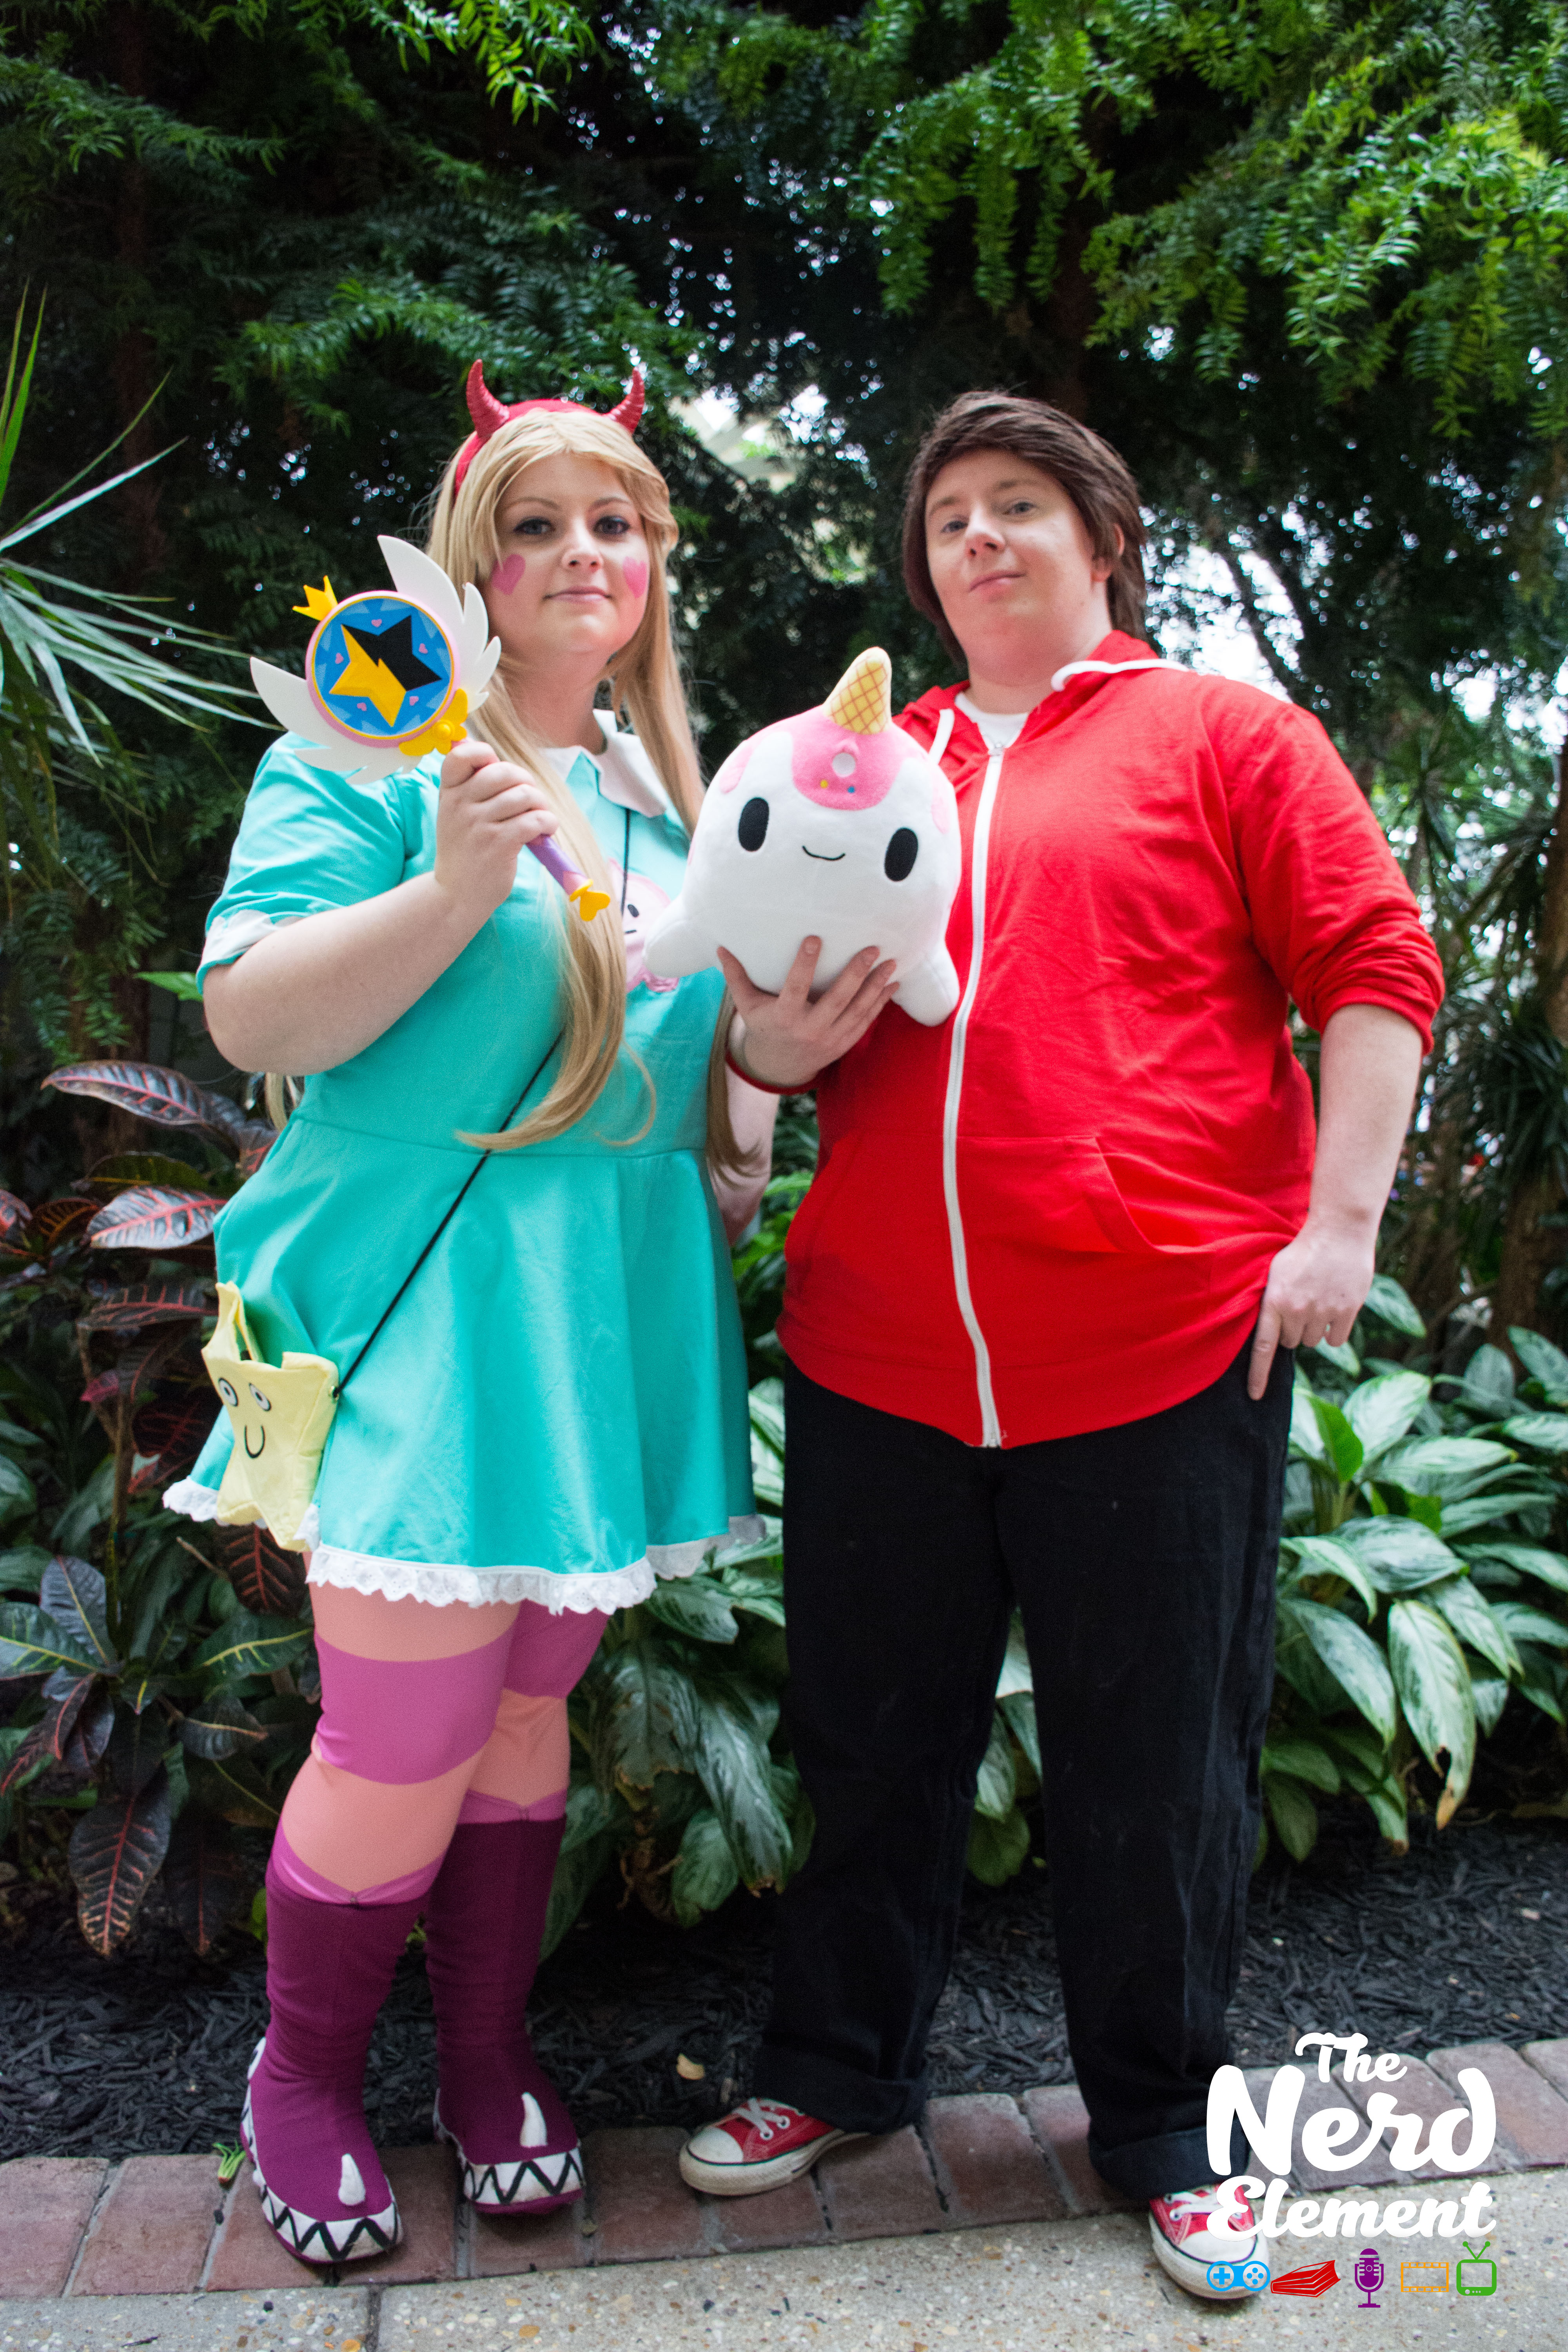 Star and Marco - Disney's Star Vs. The Forces of Evil Cosplayers: Elikathal (ig) and @epicpaopu (ig)